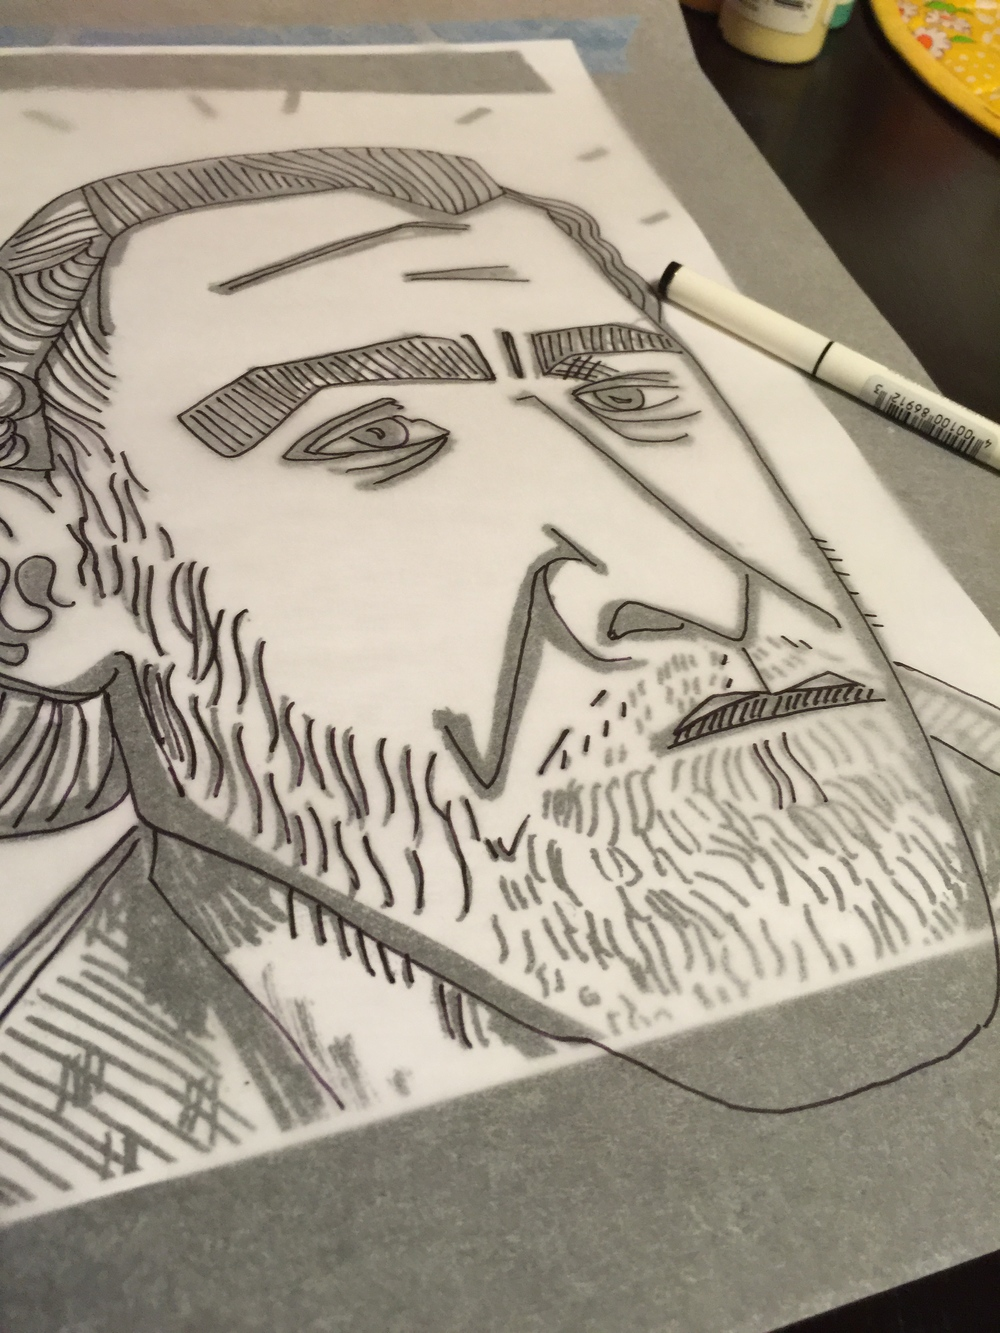 Charles Bukowski in progress illustration